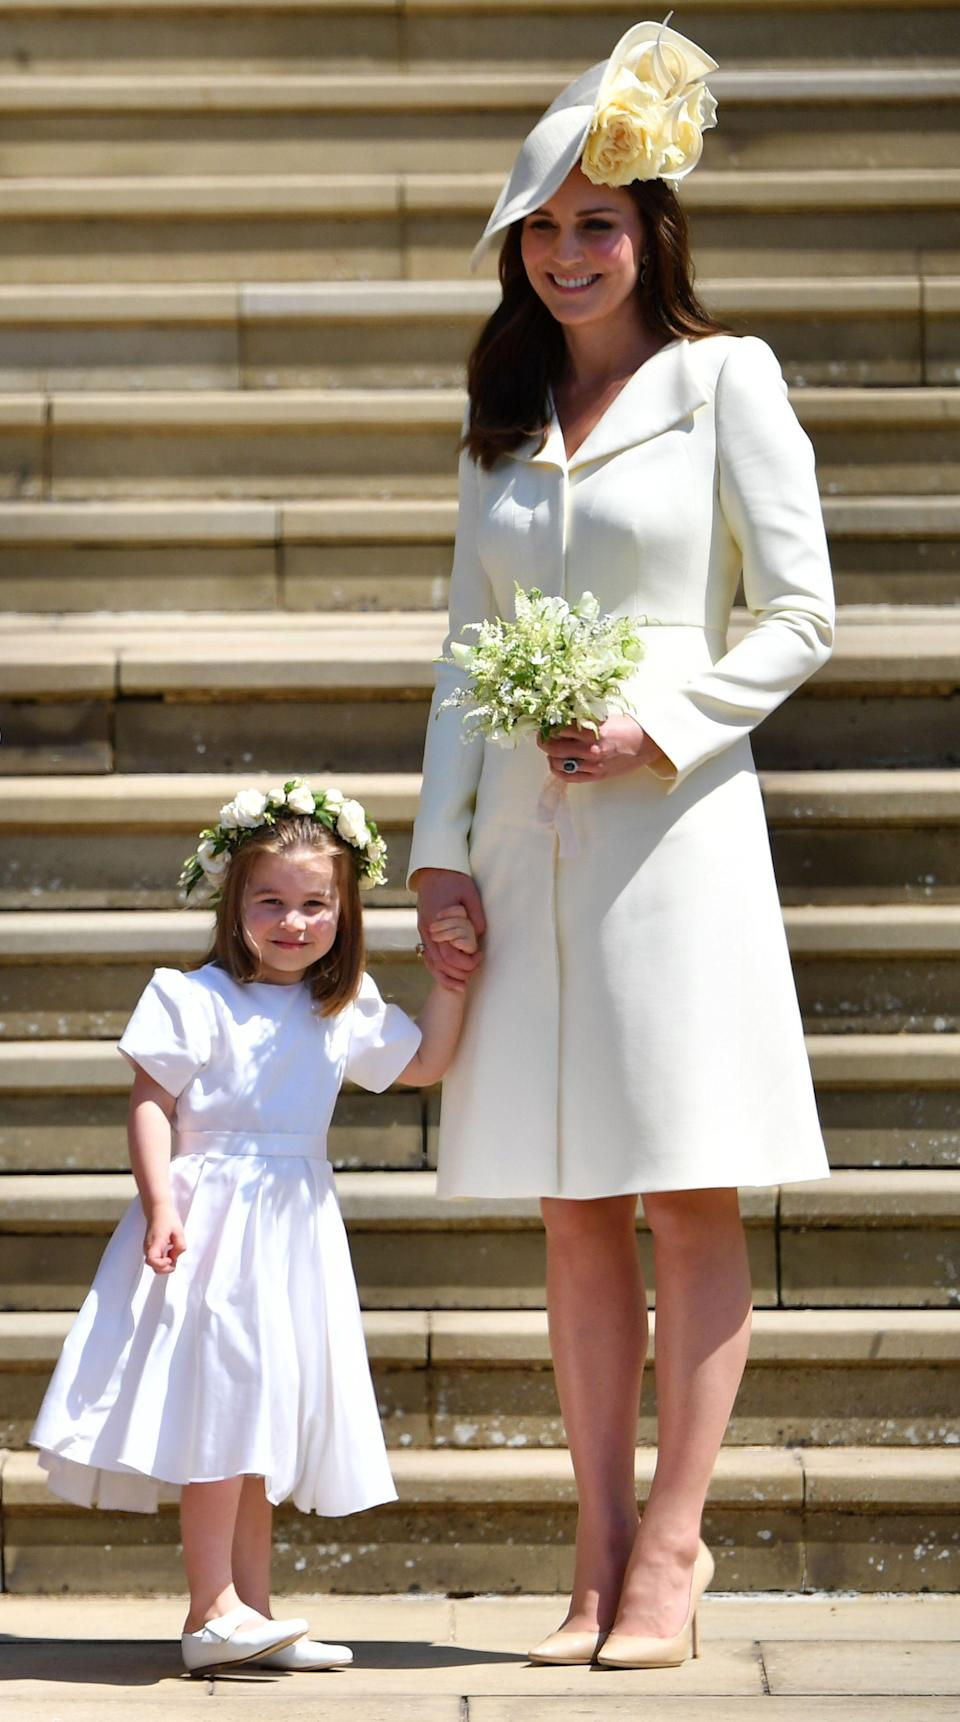 <p><strong>The occassion:</strong> Prince Harry and Meghan Markle's royal wedding. <br><strong>The look: </strong>A lemon-hued Alexander McQueen dress, a Philip Treacy hat and Jimmy Choo heels. <br>[Photo: Getty] </p>